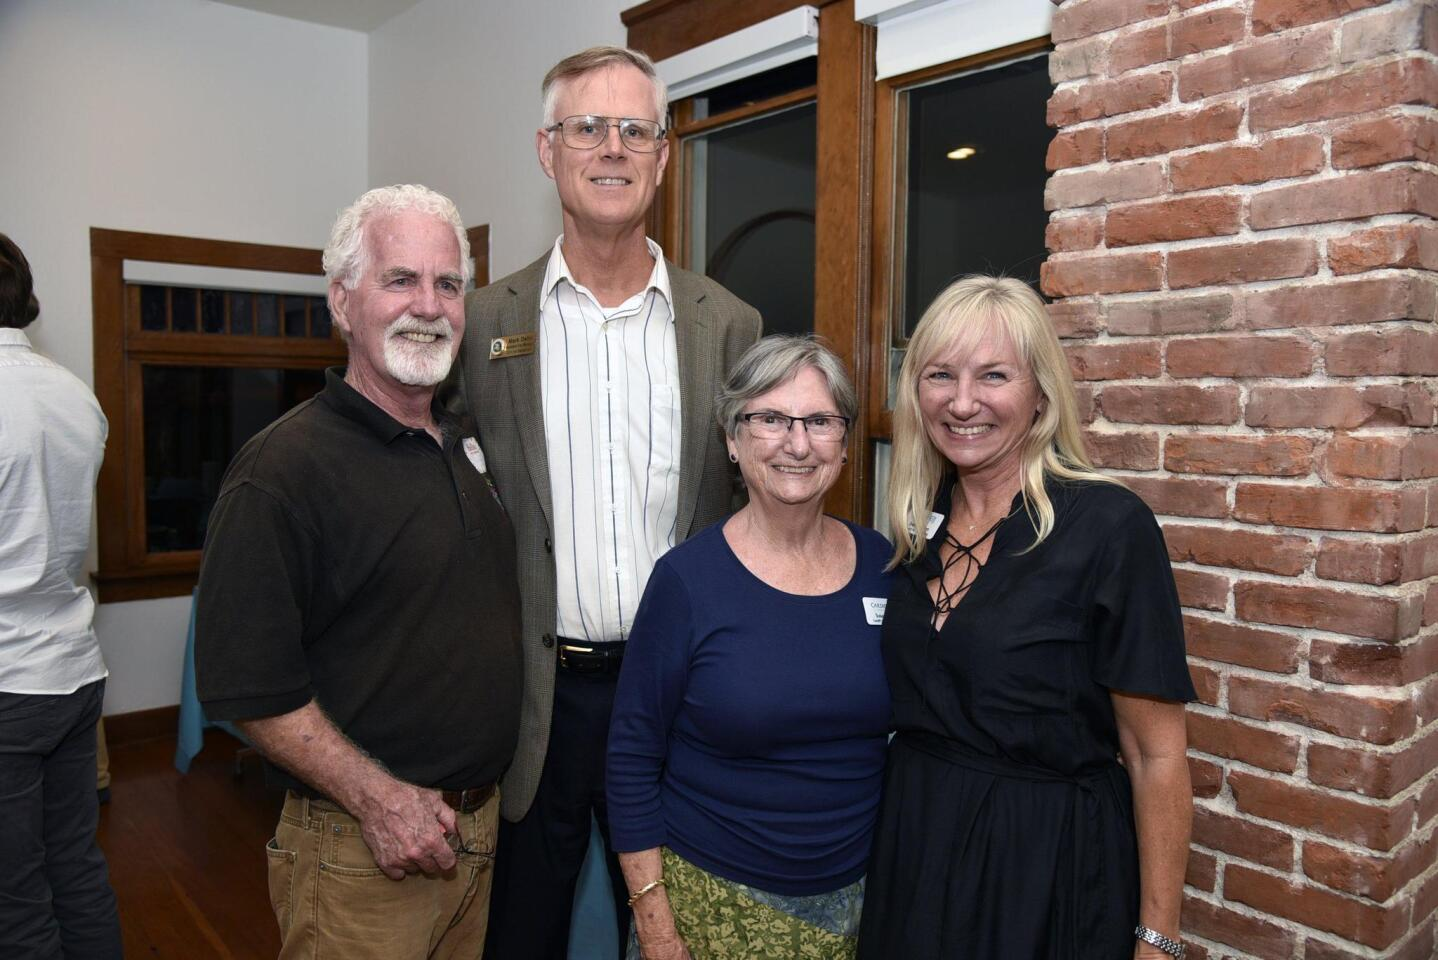 Cardiff 101 board members Morgan Mallory, Susan Hays, Brenda Dizon, and Encinitas Assistant City Manager Mark Delin (second from left)